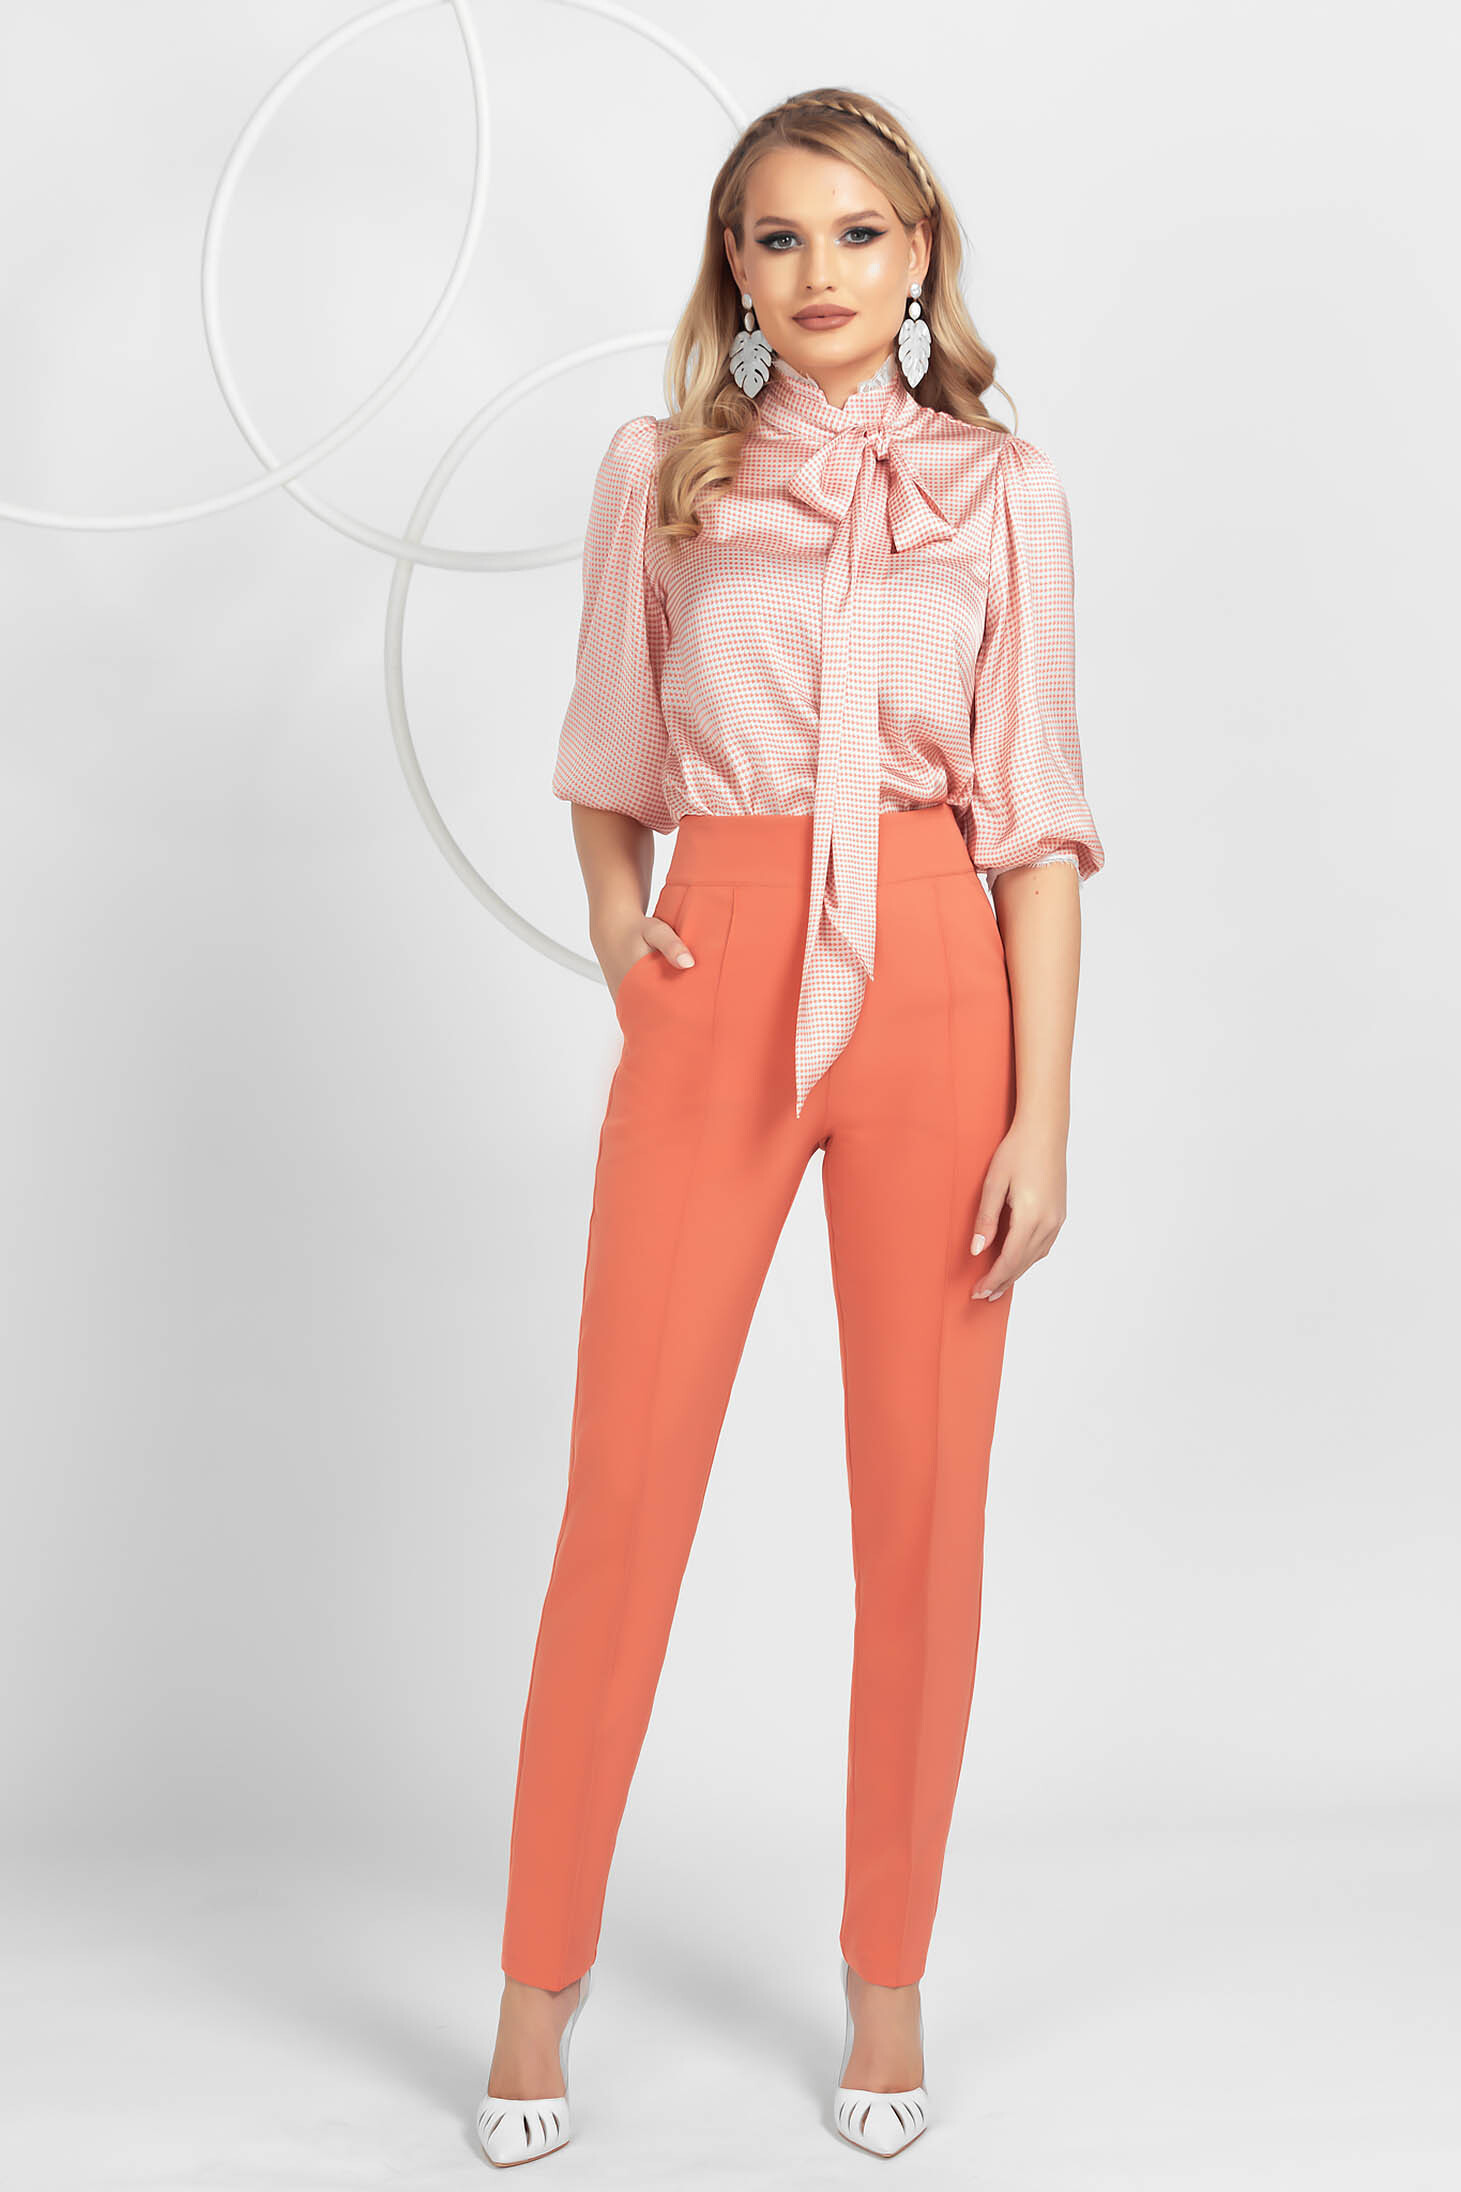 Trousers coral office conical slightly elastic fabric